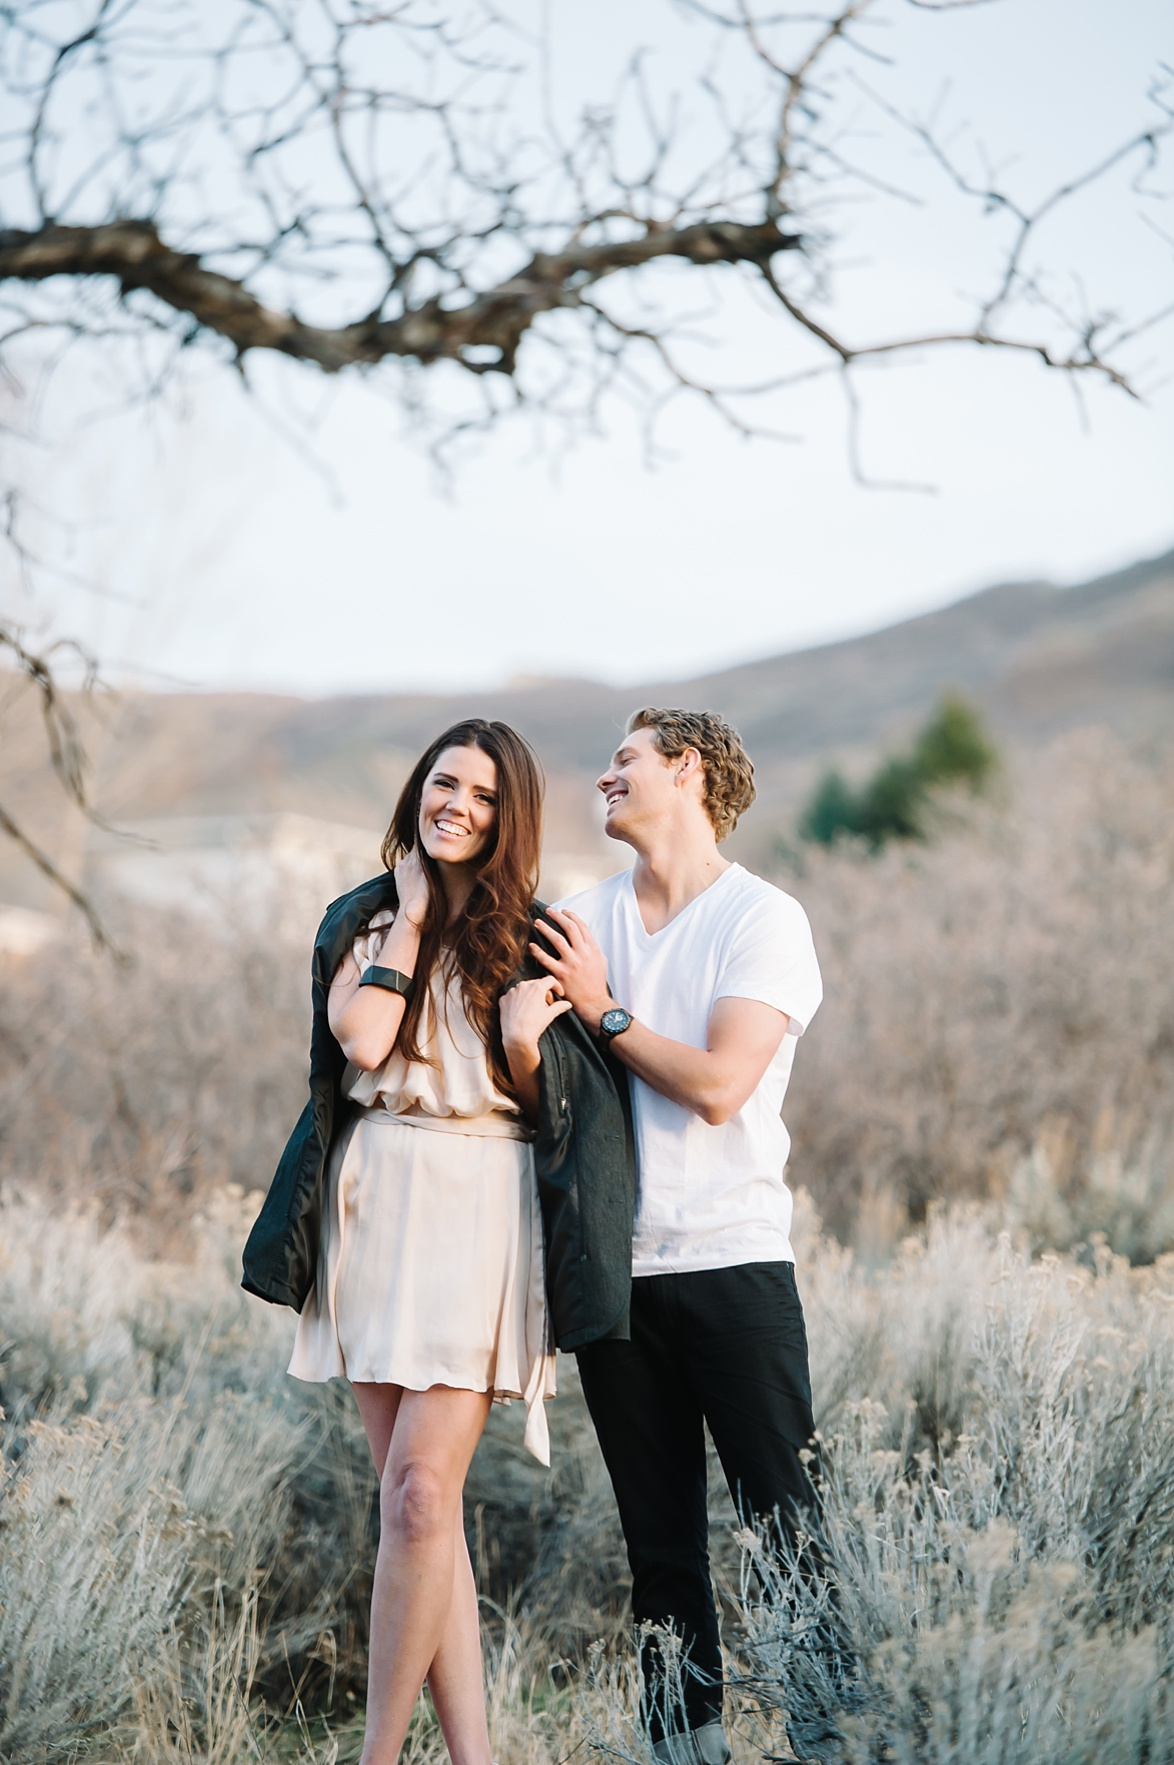 Park City Engagement Photographer Ali Sumsion 01